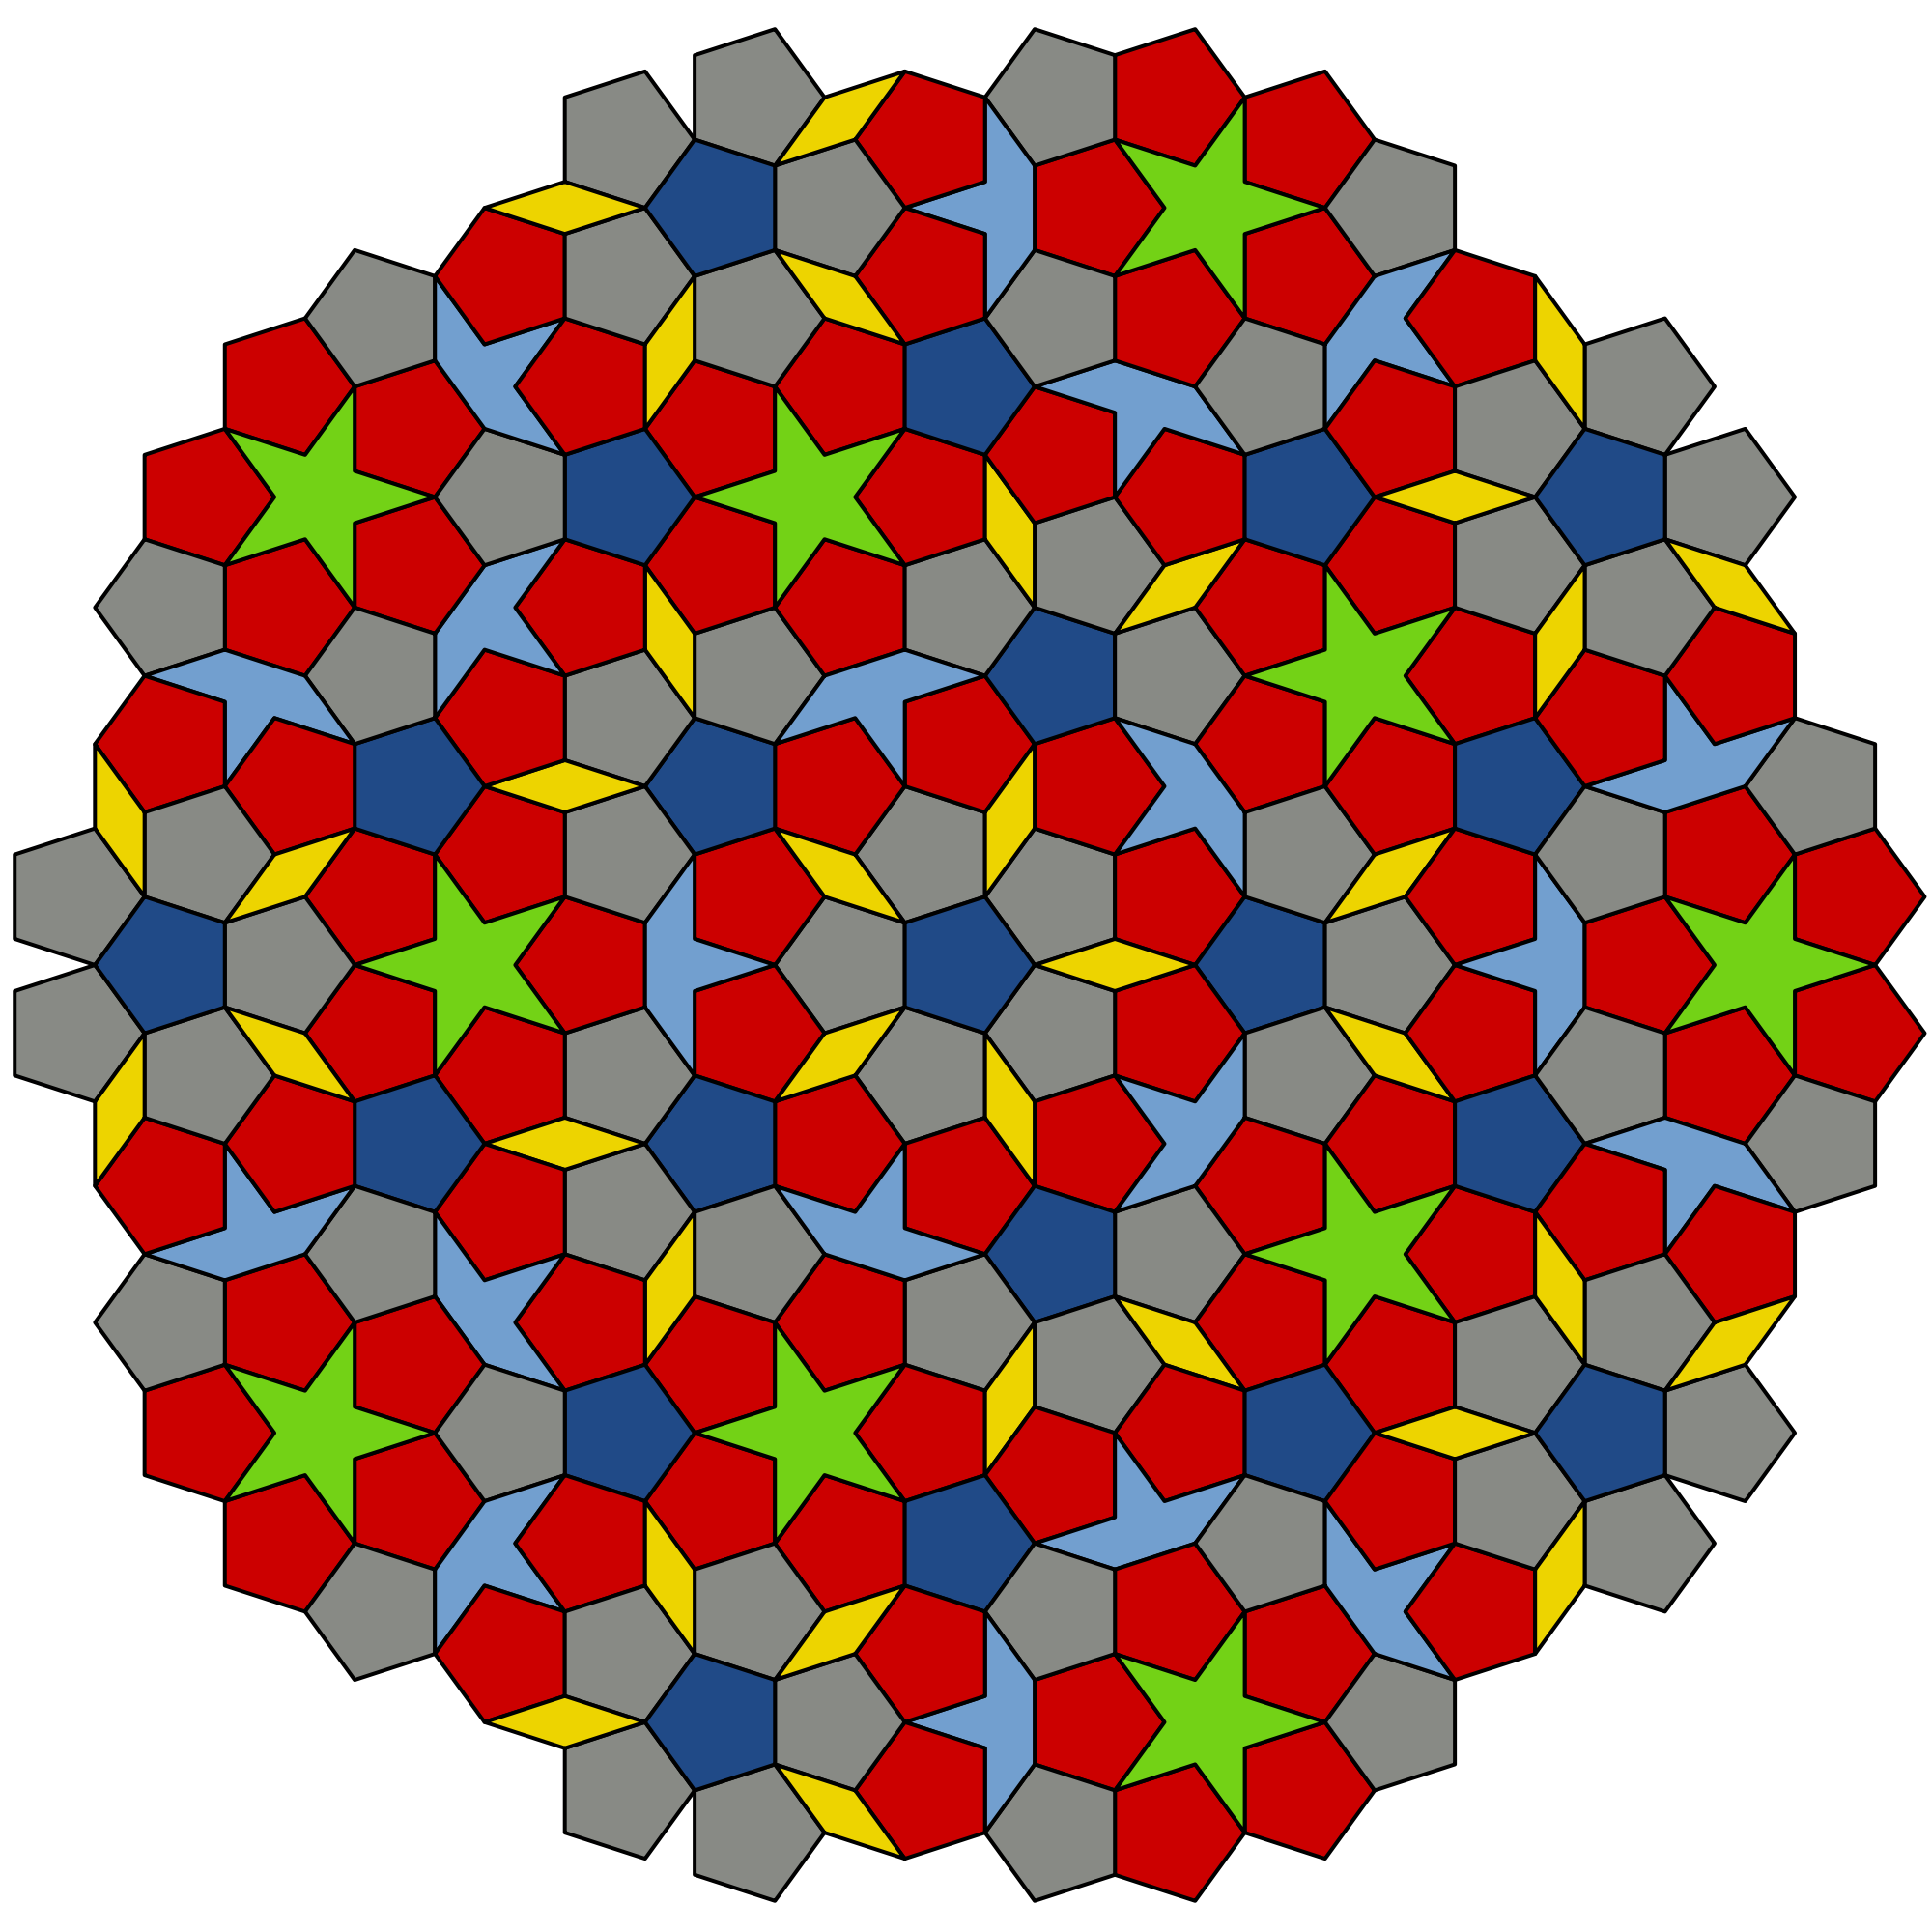 Kptallat a kvetkezre penrose tiles pinterest english a penrose tiling is a non periodic tiling generated by an aperiodic set of prototiles dailygadgetfo Images